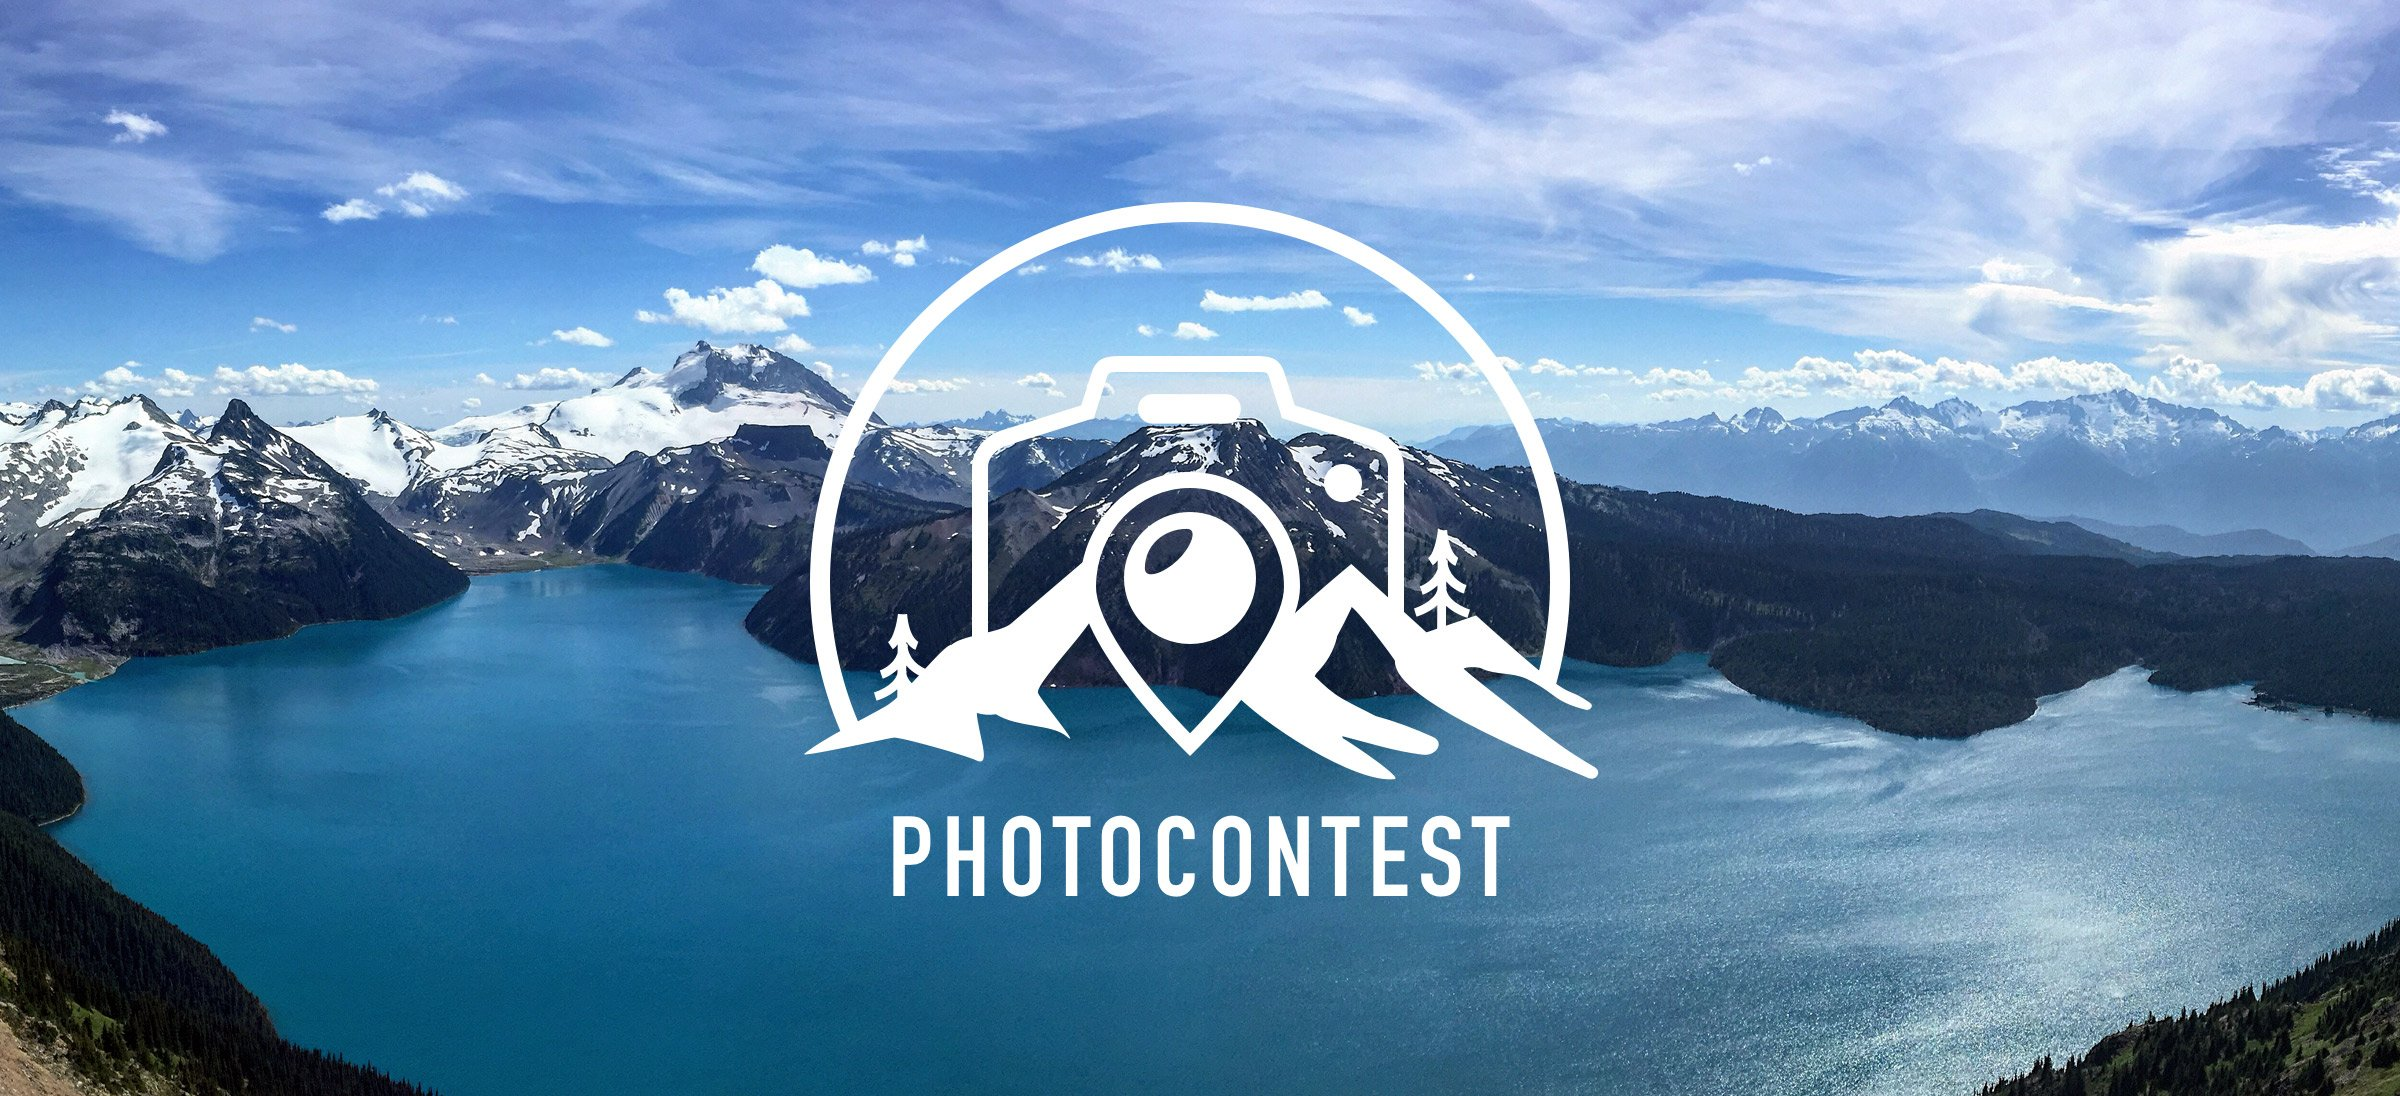 The Vancouver Trails Photo Contest